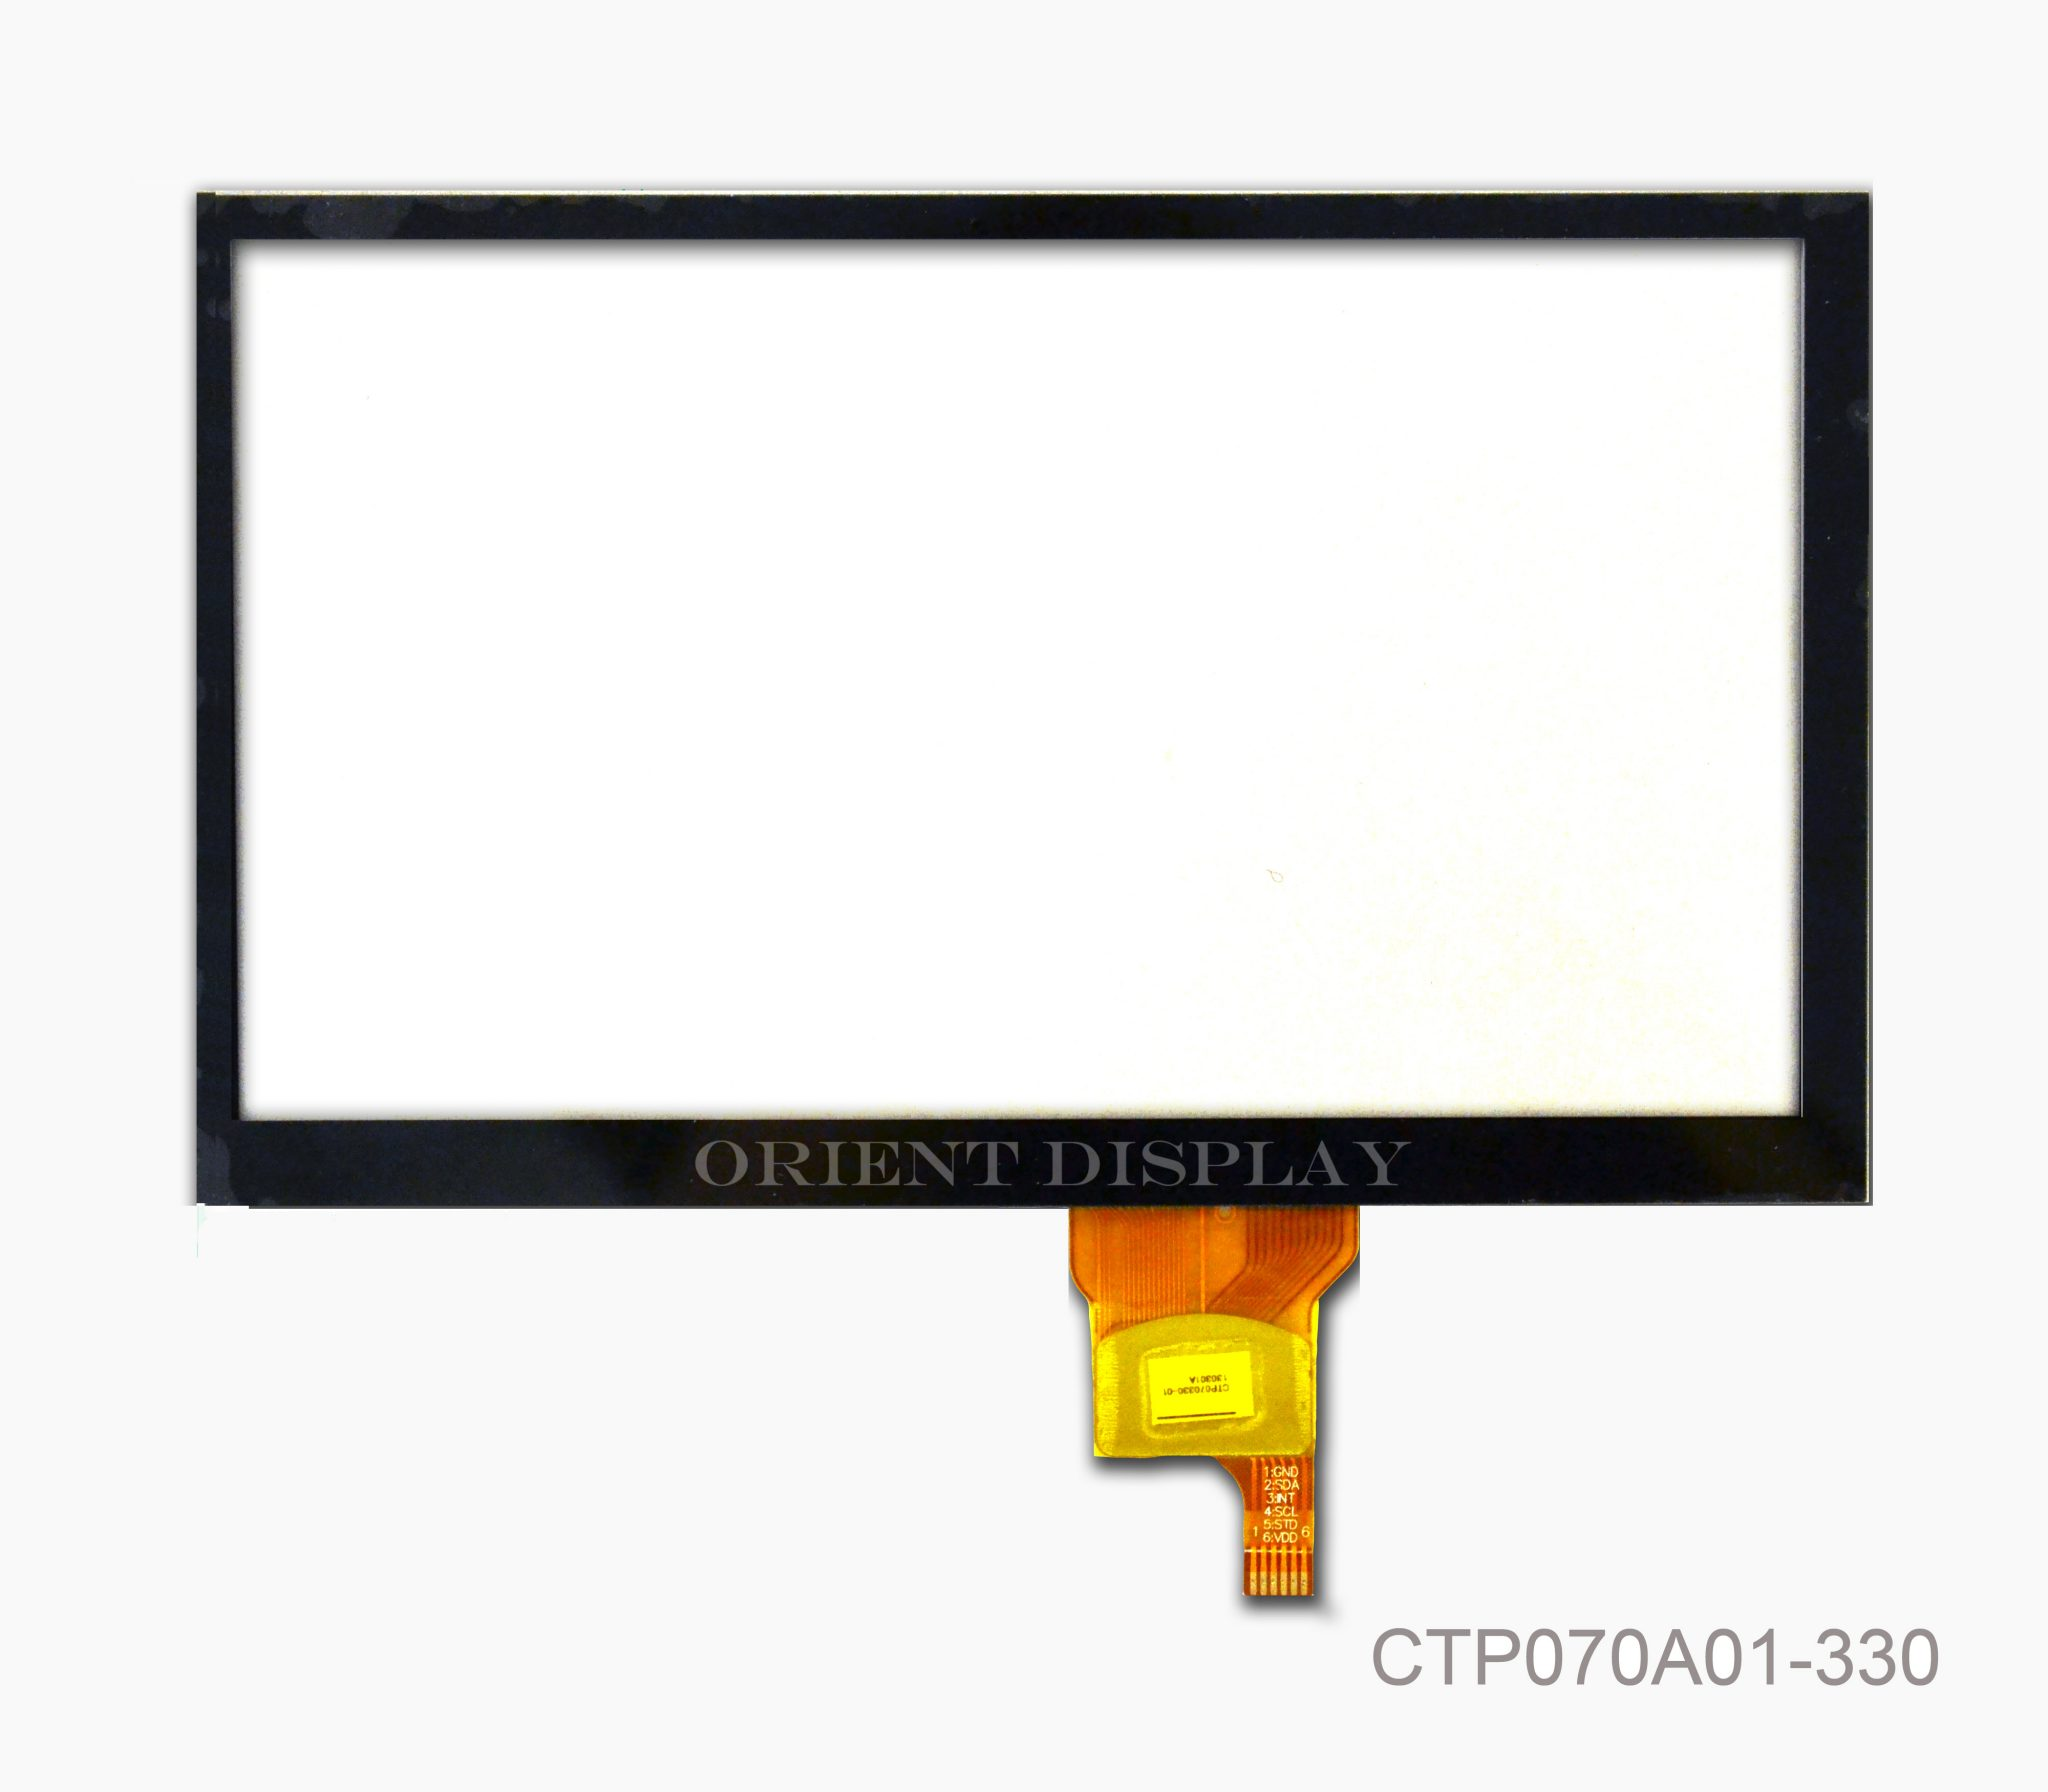 Orient Display: Capacitive Touch Panel, Part# CTP070A01-330